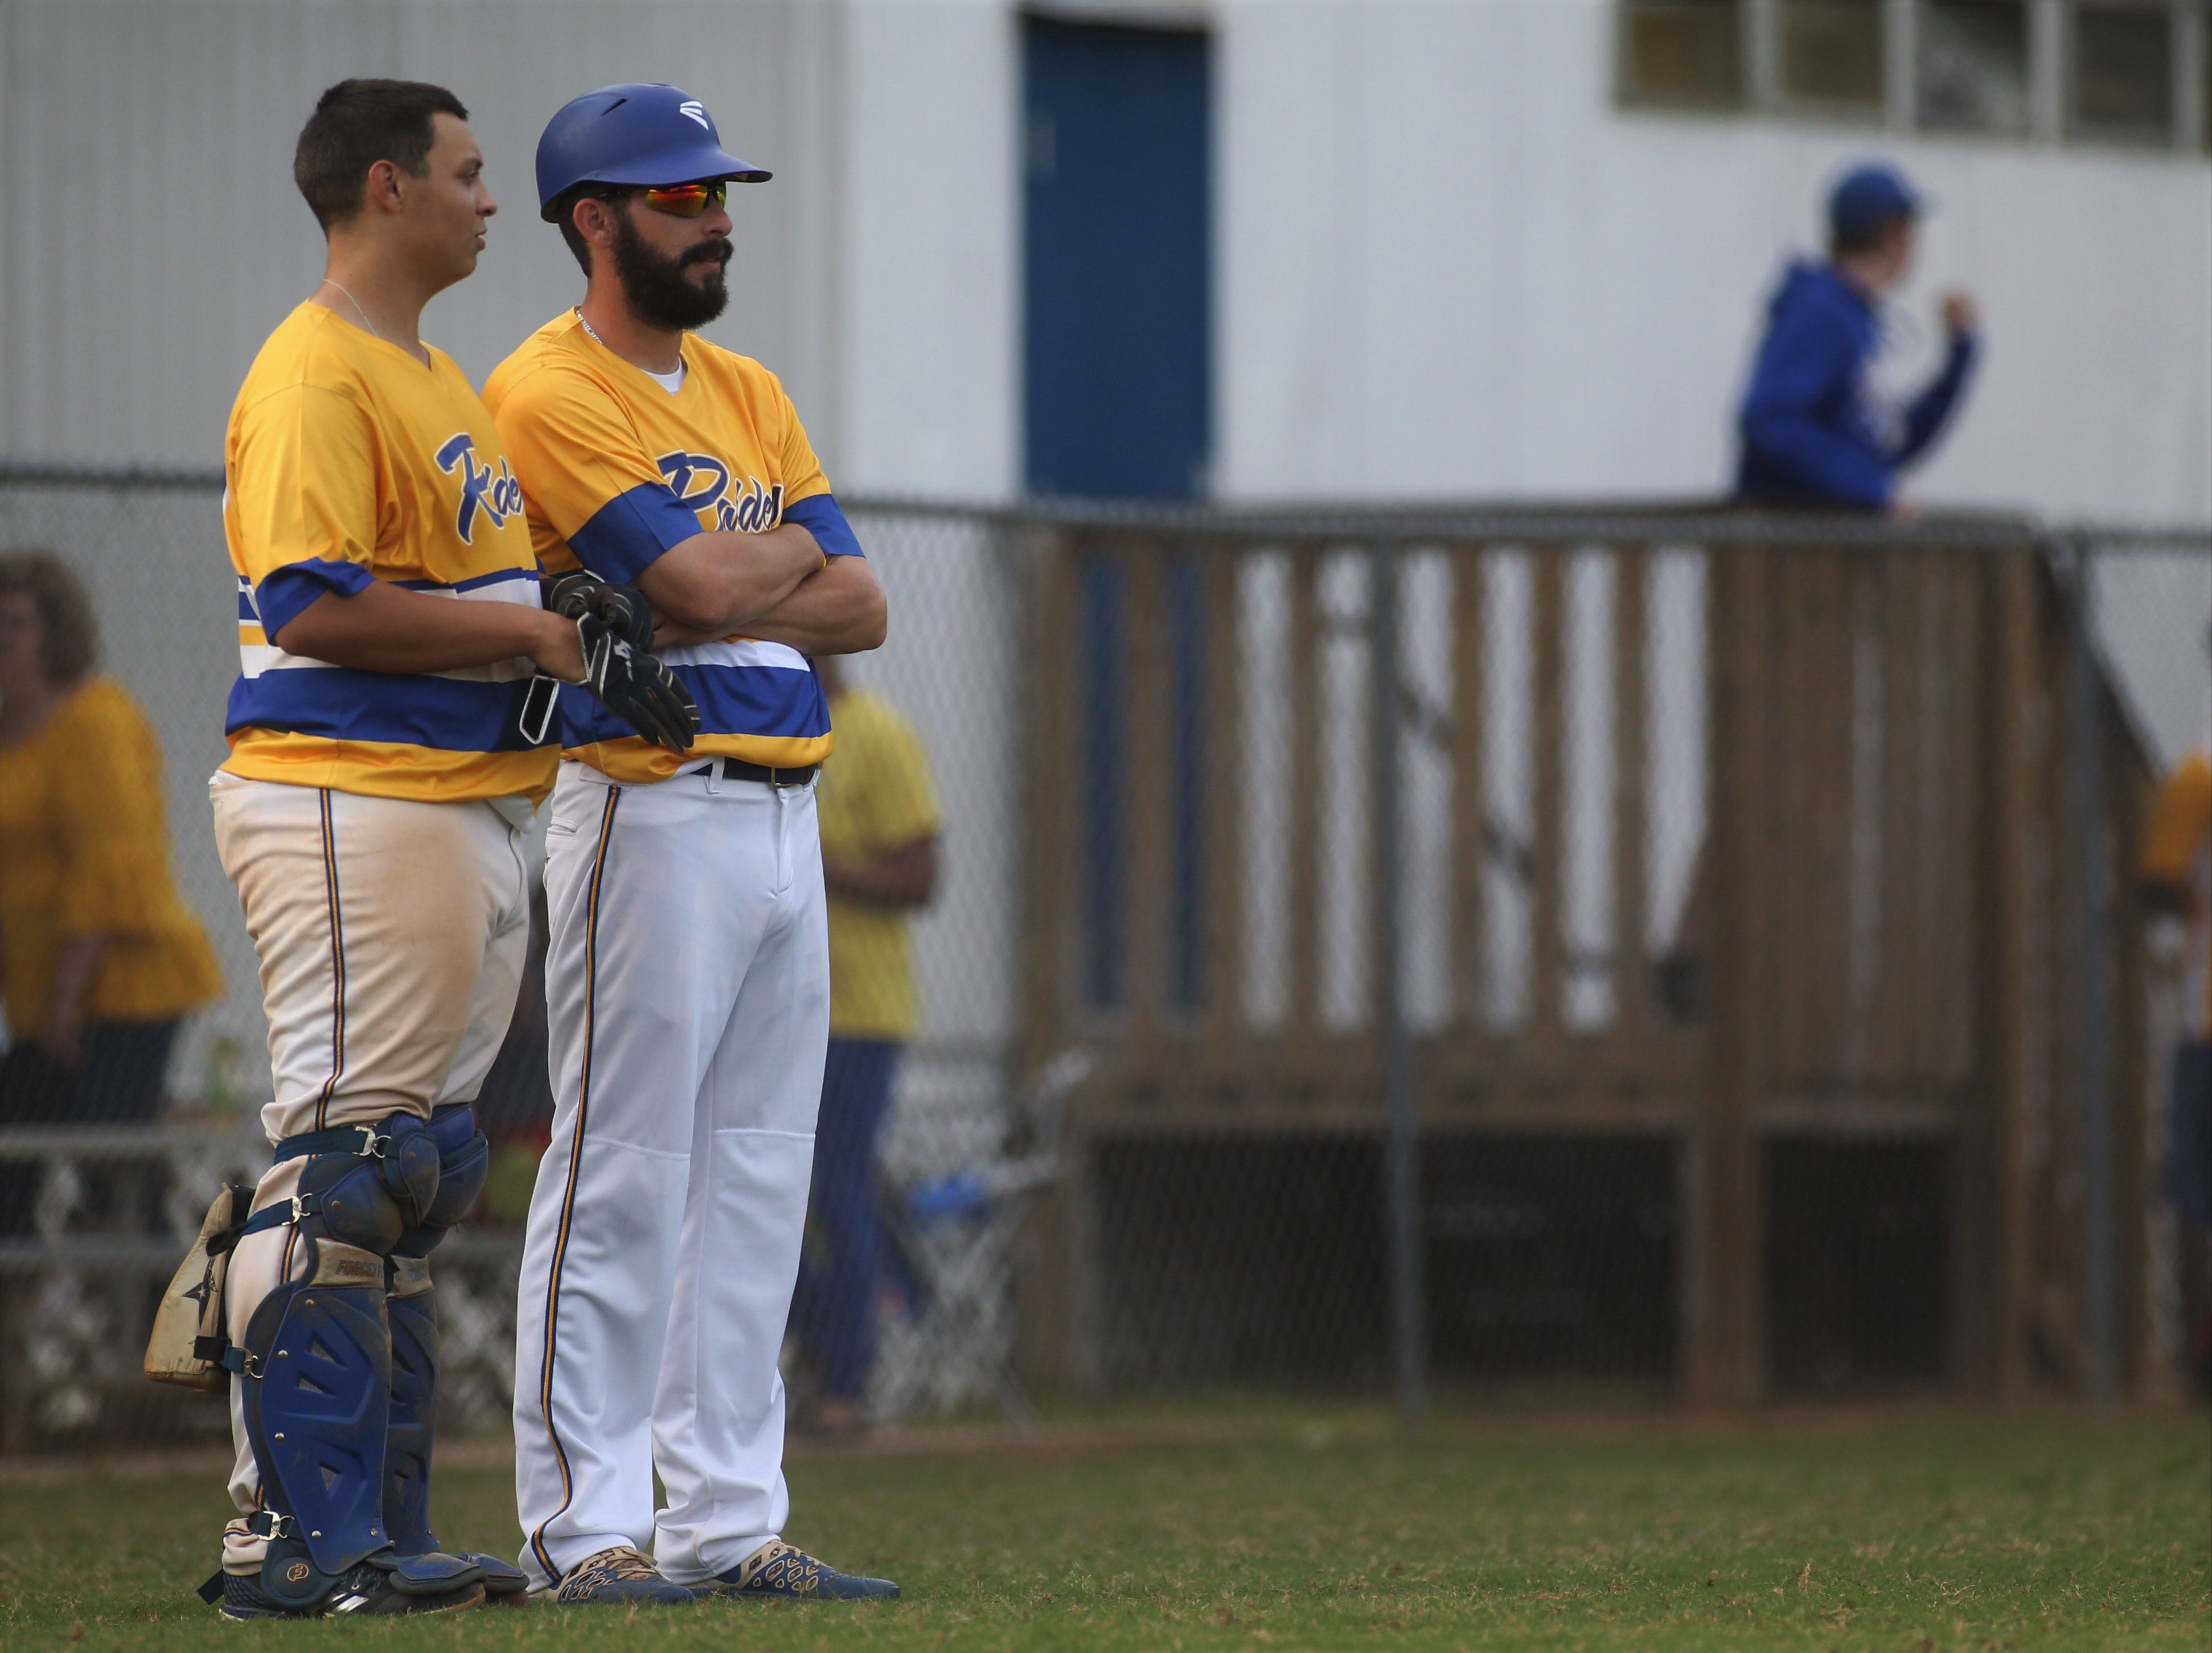 Rickards catcher Jayfen Figueroa talks strategy with his assistant coach as Rickards beat Gadsden County 18-0 in three innings on Friday, April 12, 2019.